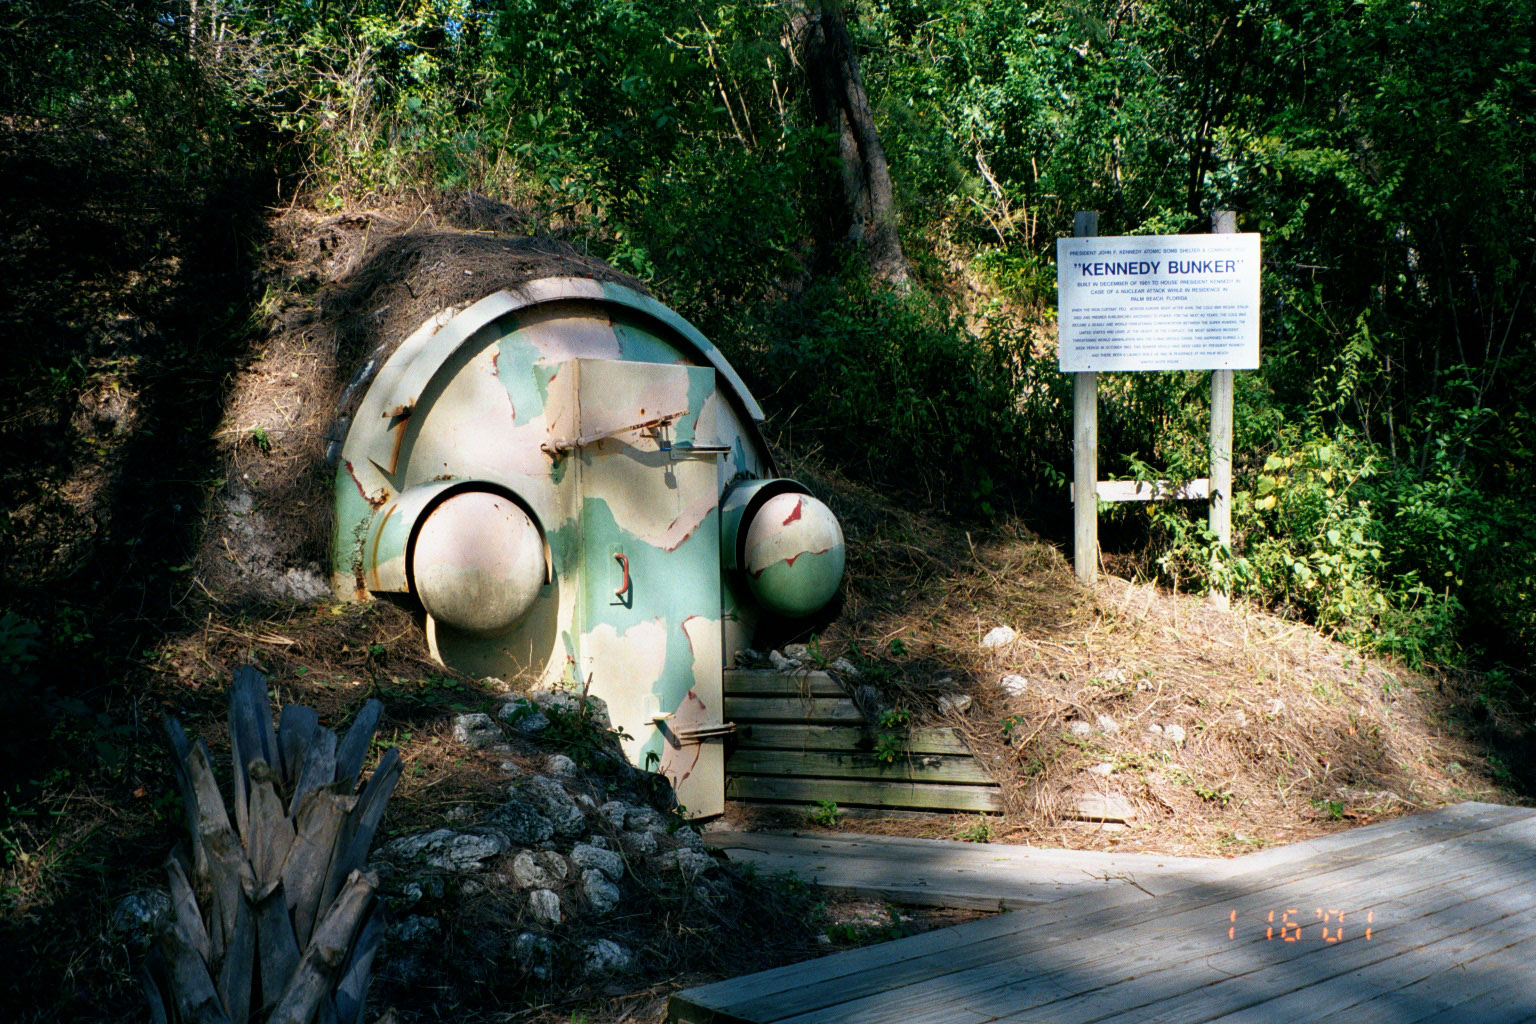 Peanut Island, Florida: outside entrance to President J F Kennedy nuclear bunker